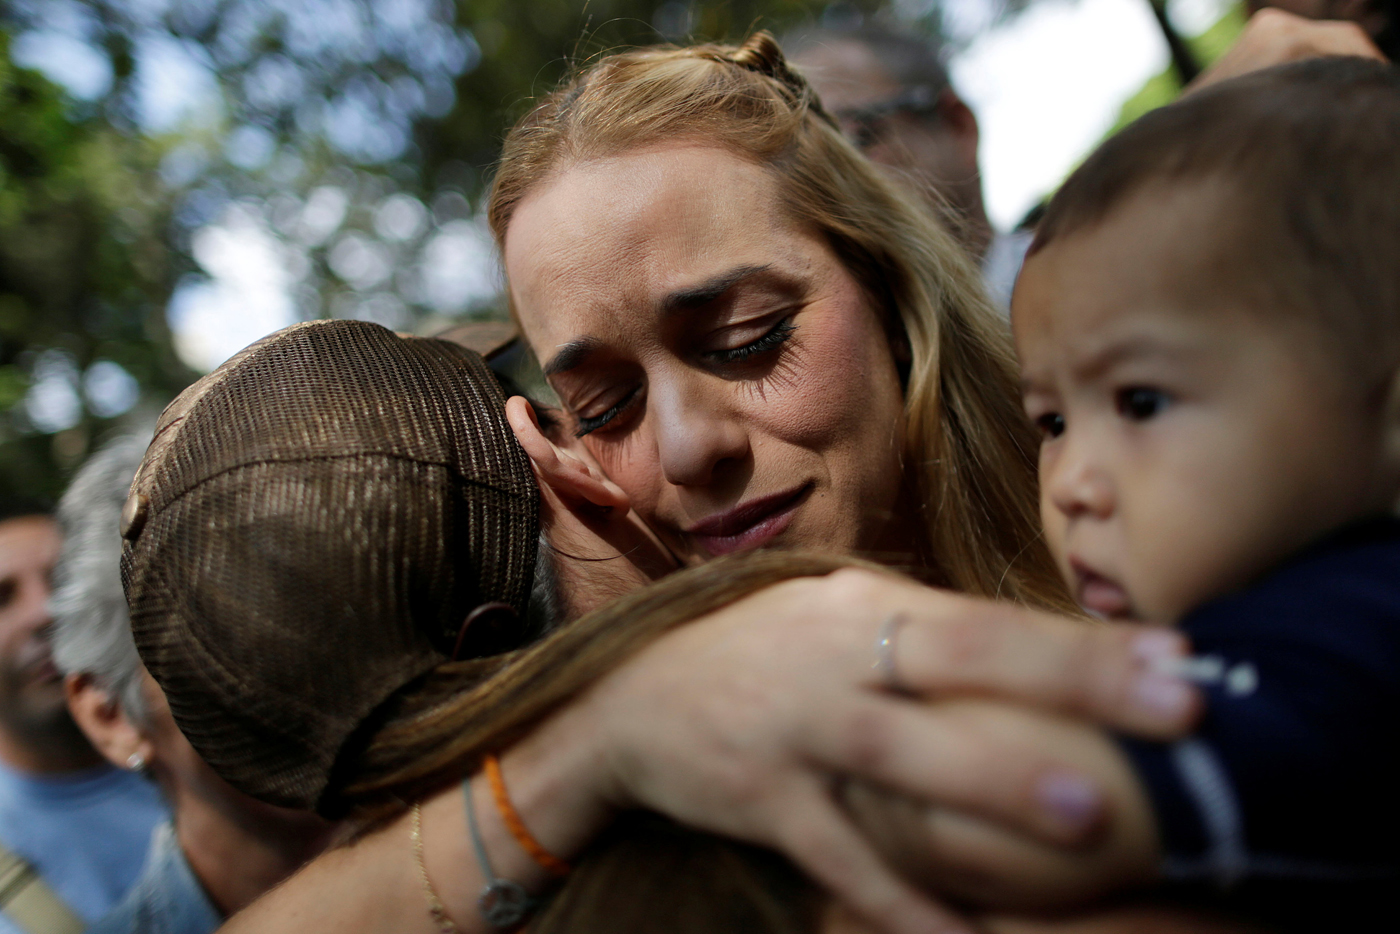 Lilian Tintori, wife of jailed Venezuelan opposition leader Leopoldo Lopez, greets a woman after a gathering to donate supplies at the Dr. Jose Gregorio Hernandez Hospital in Caracas, Venezuela November 30, 2016. REUTERS/Ueslei Marcelino